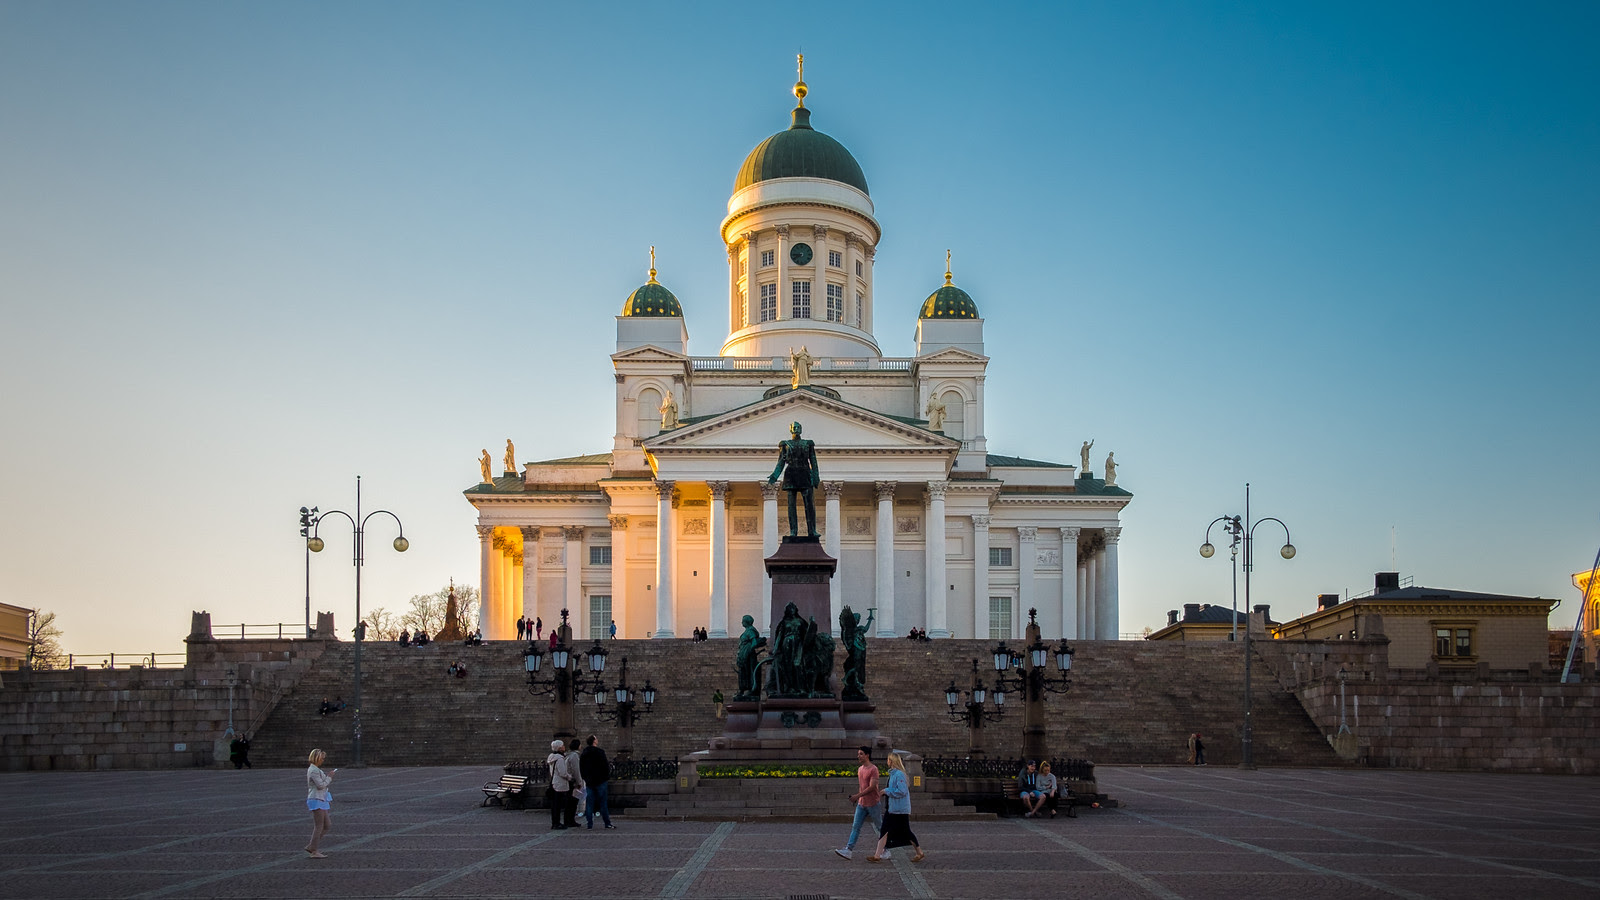 The Cathedral at sunset - Helsinki, FInland - Architecture photography